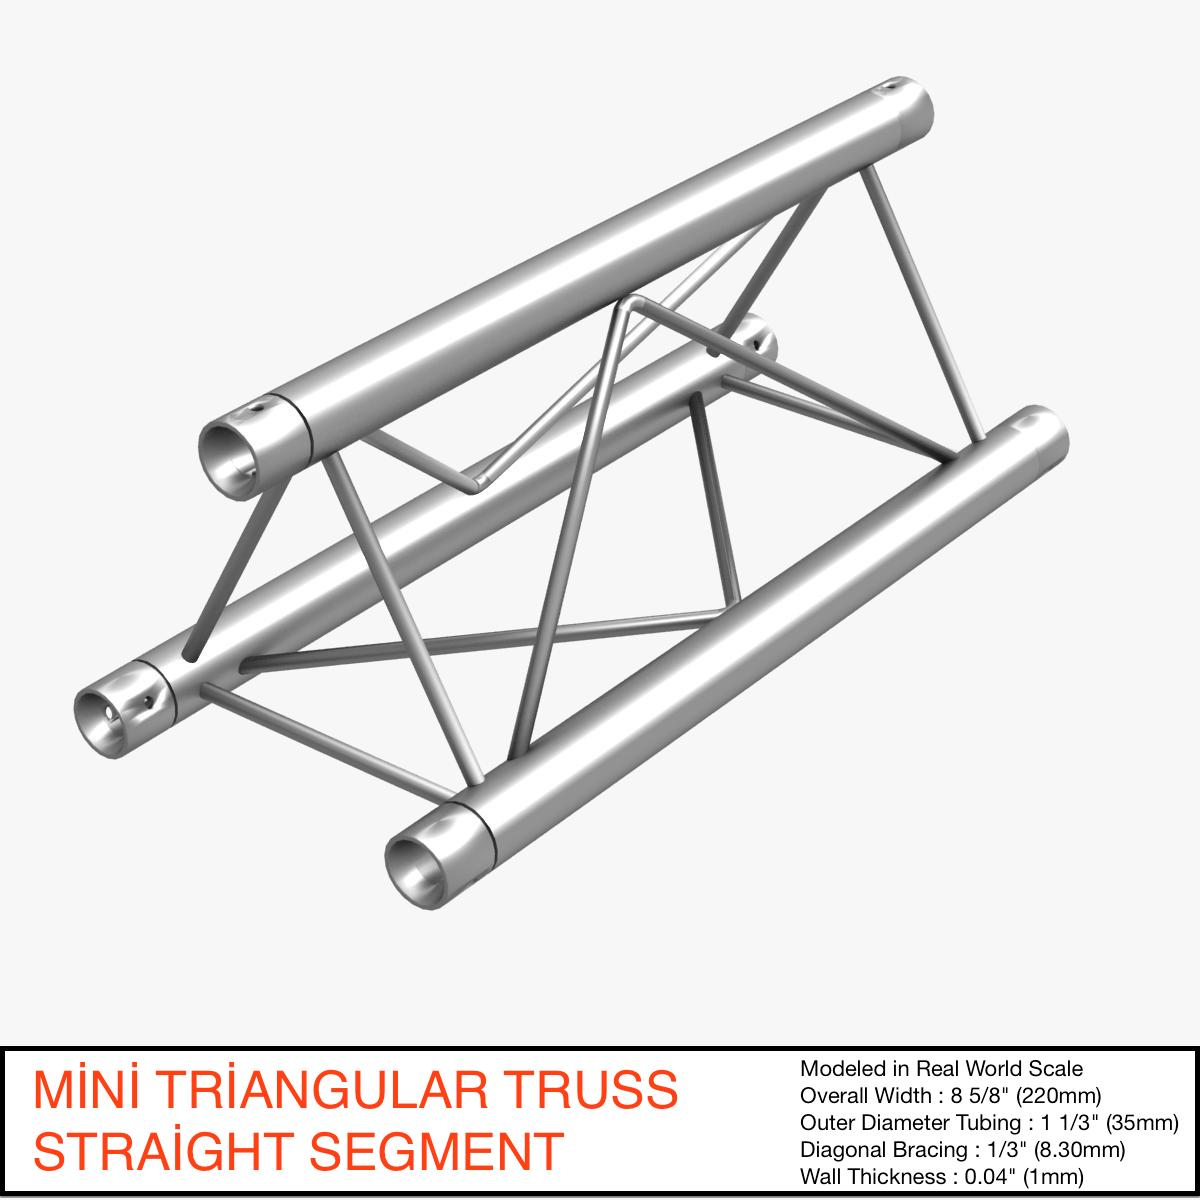 Mini Triangular Truss Straight Segment 111 3d model 3ds max dxf fbx c4d other  obj 268874